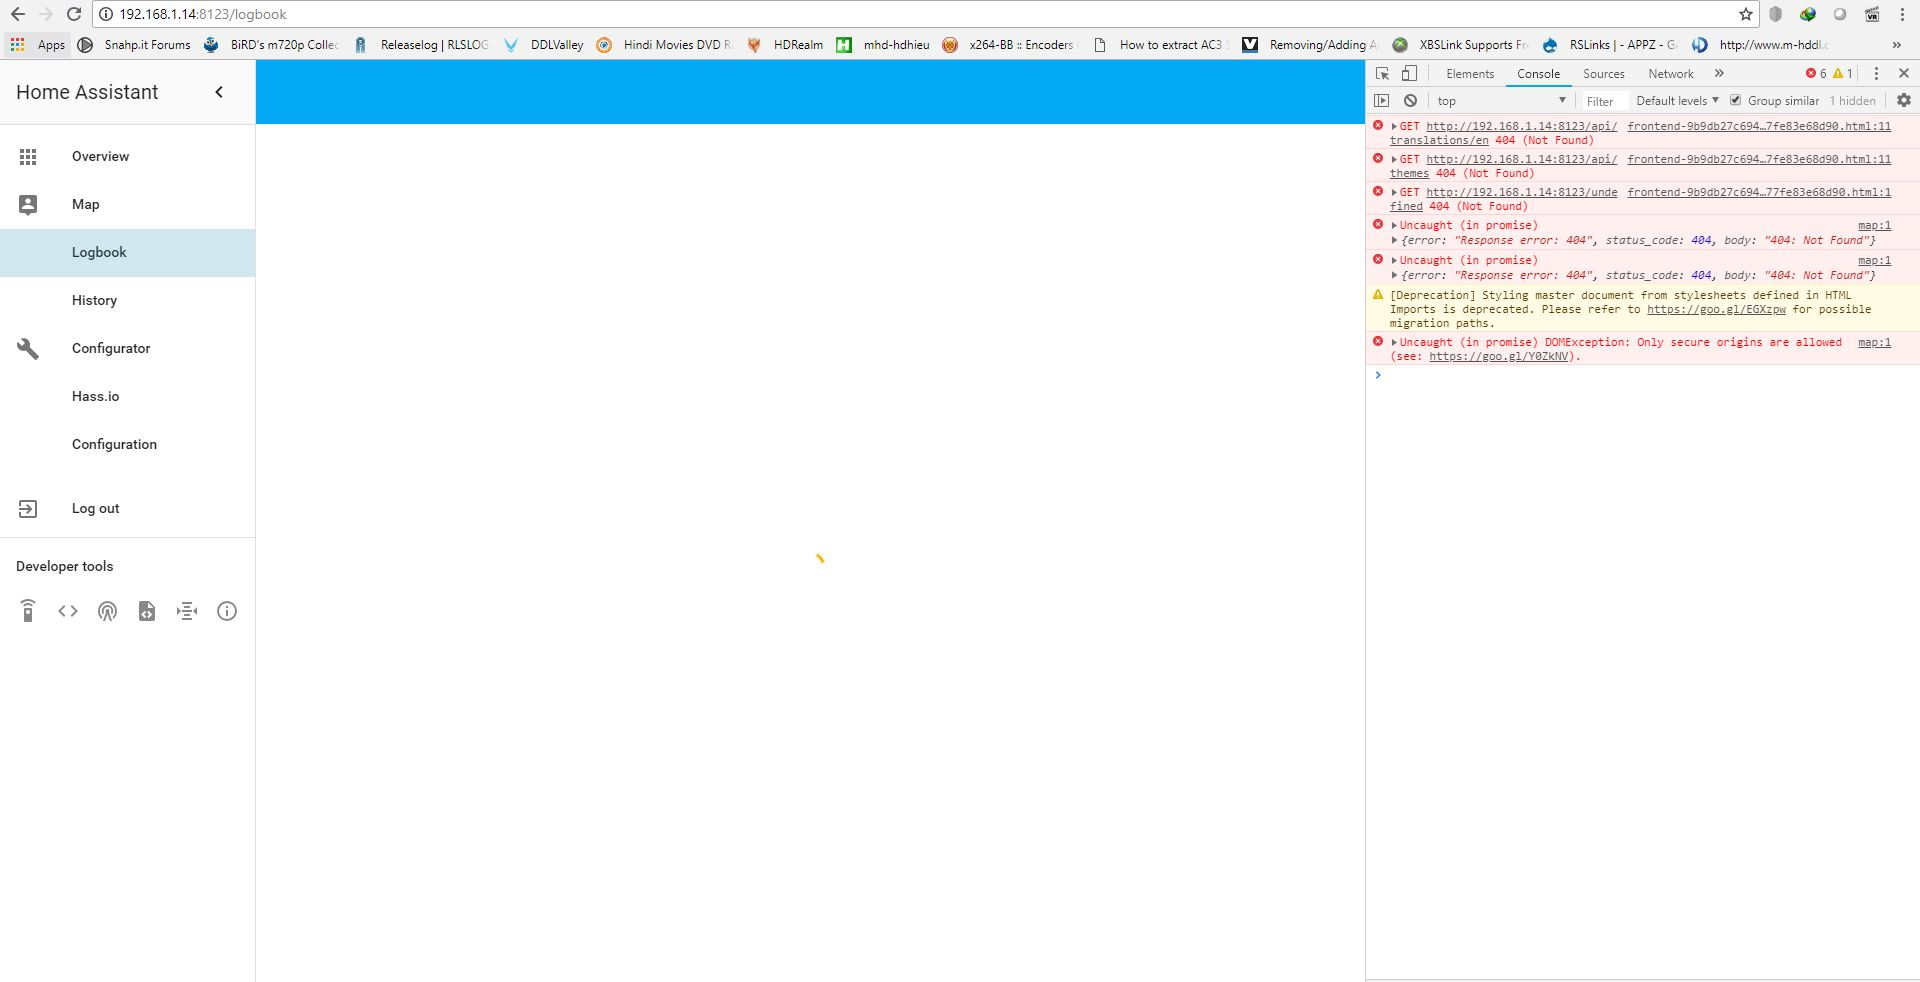 Hass io dashboard partially working after update! dashboard loading